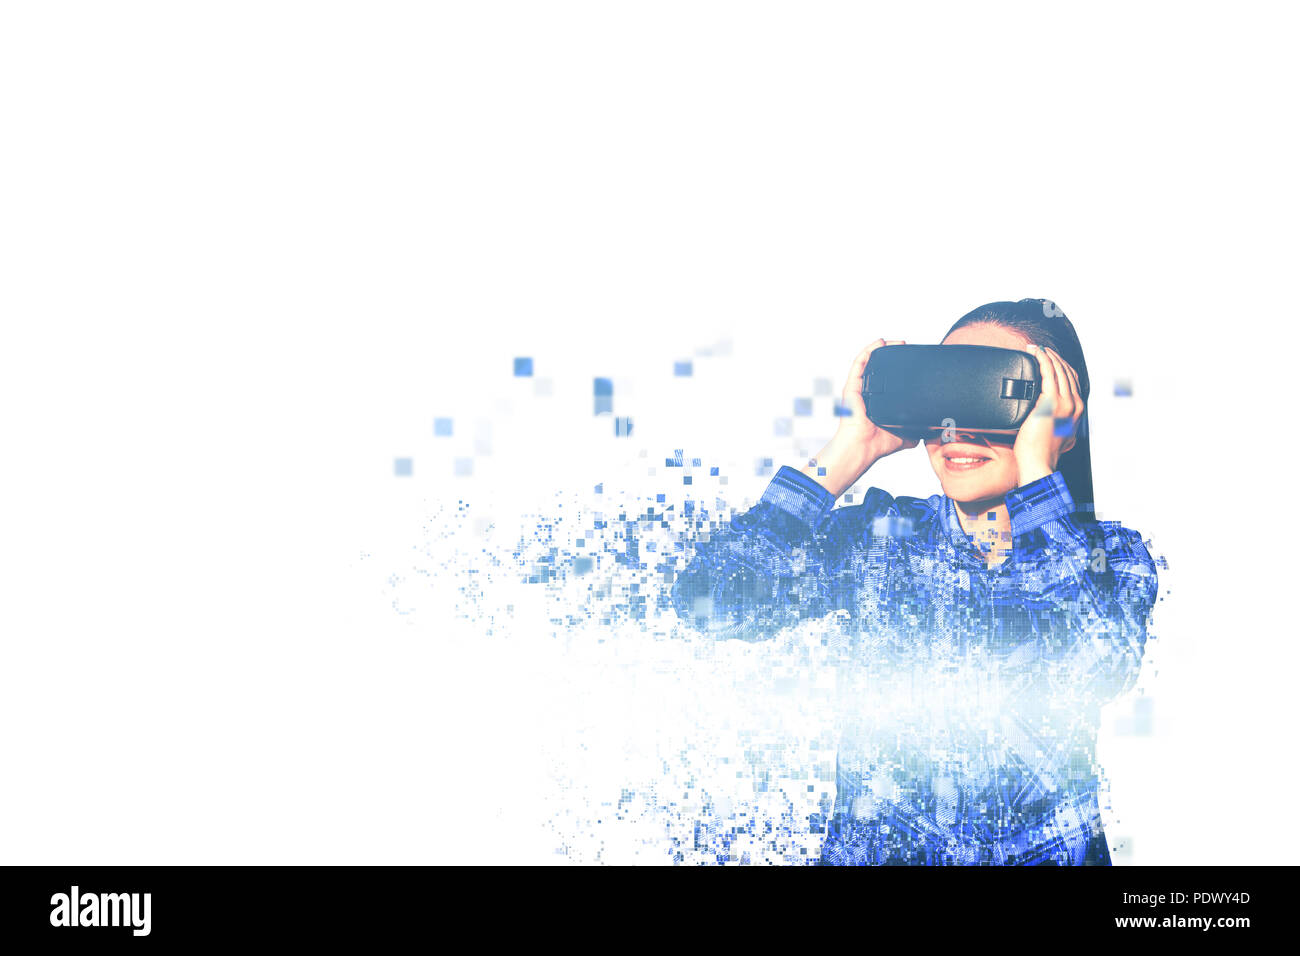 The woman with glasses of virtual reality. Future technology concept. Modern imaging technology. Fragmented by pixels - Stock Image